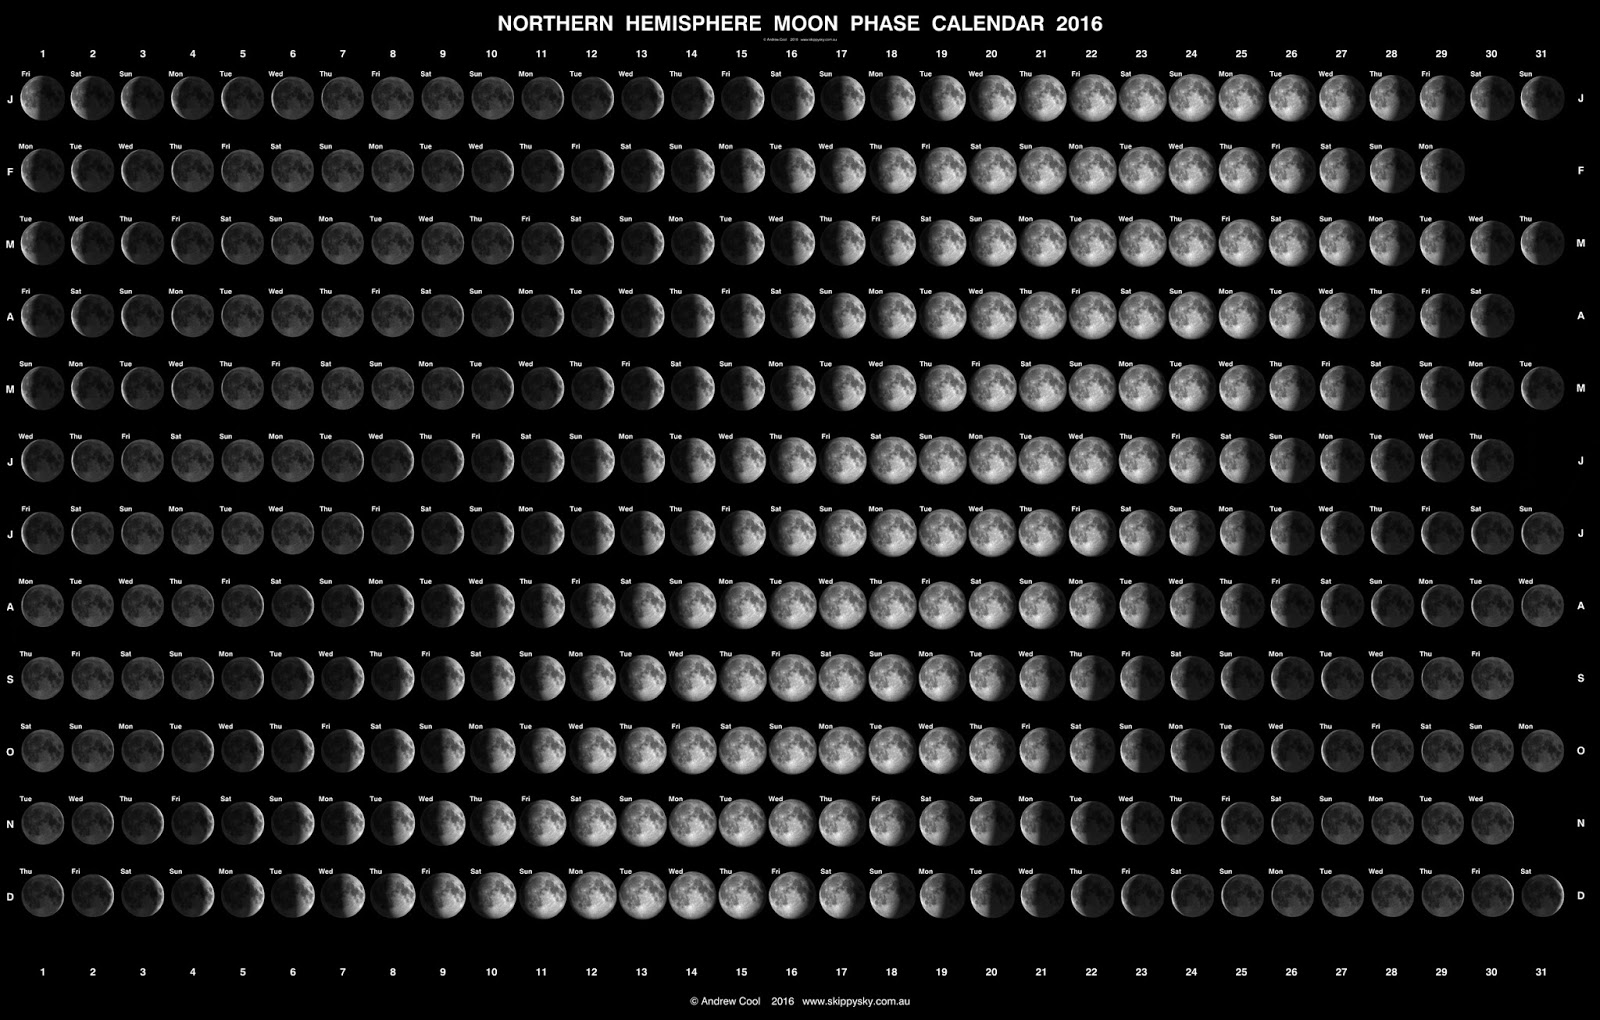 Moon Phases Calendar.Loss Of The Night Citizen Science Project Moon Phase Calendar For 2016